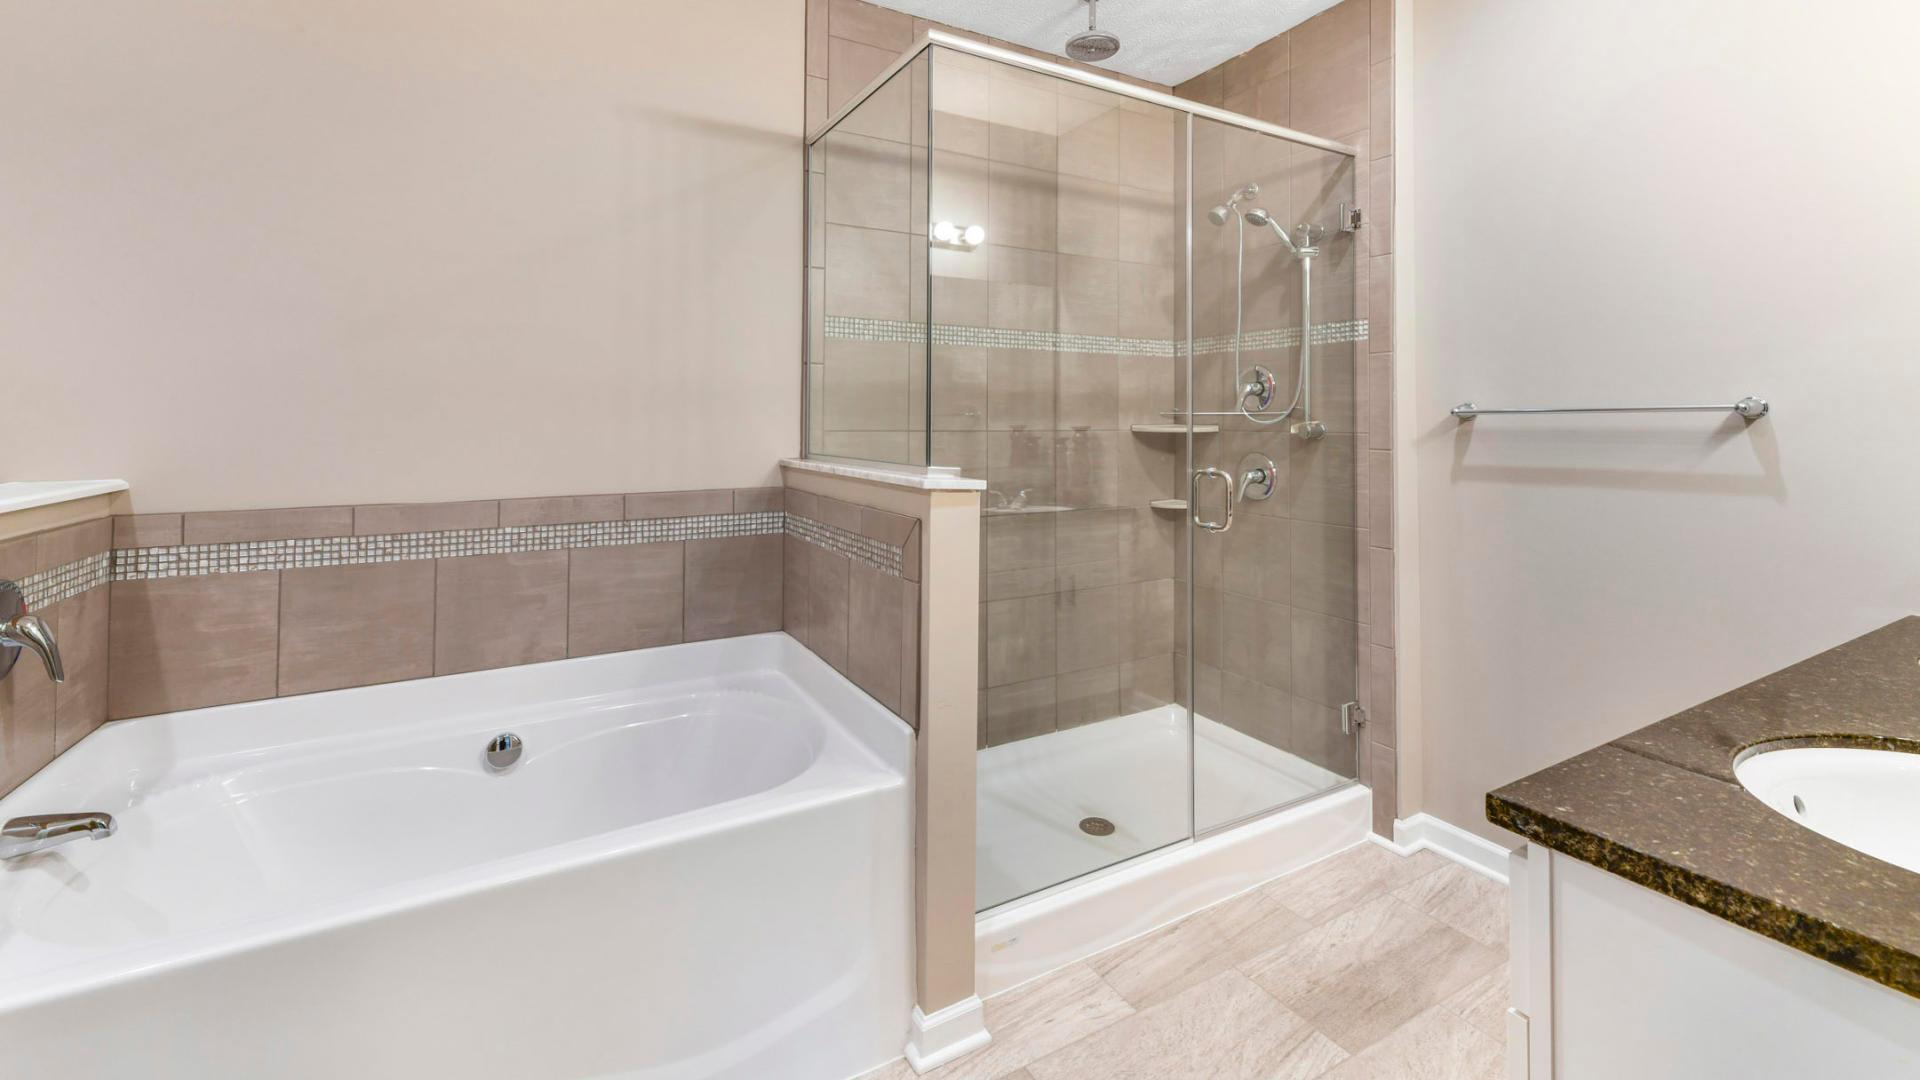 Bathroom featured in the Sanibel By Maronda Homes in Pittsburgh, PA